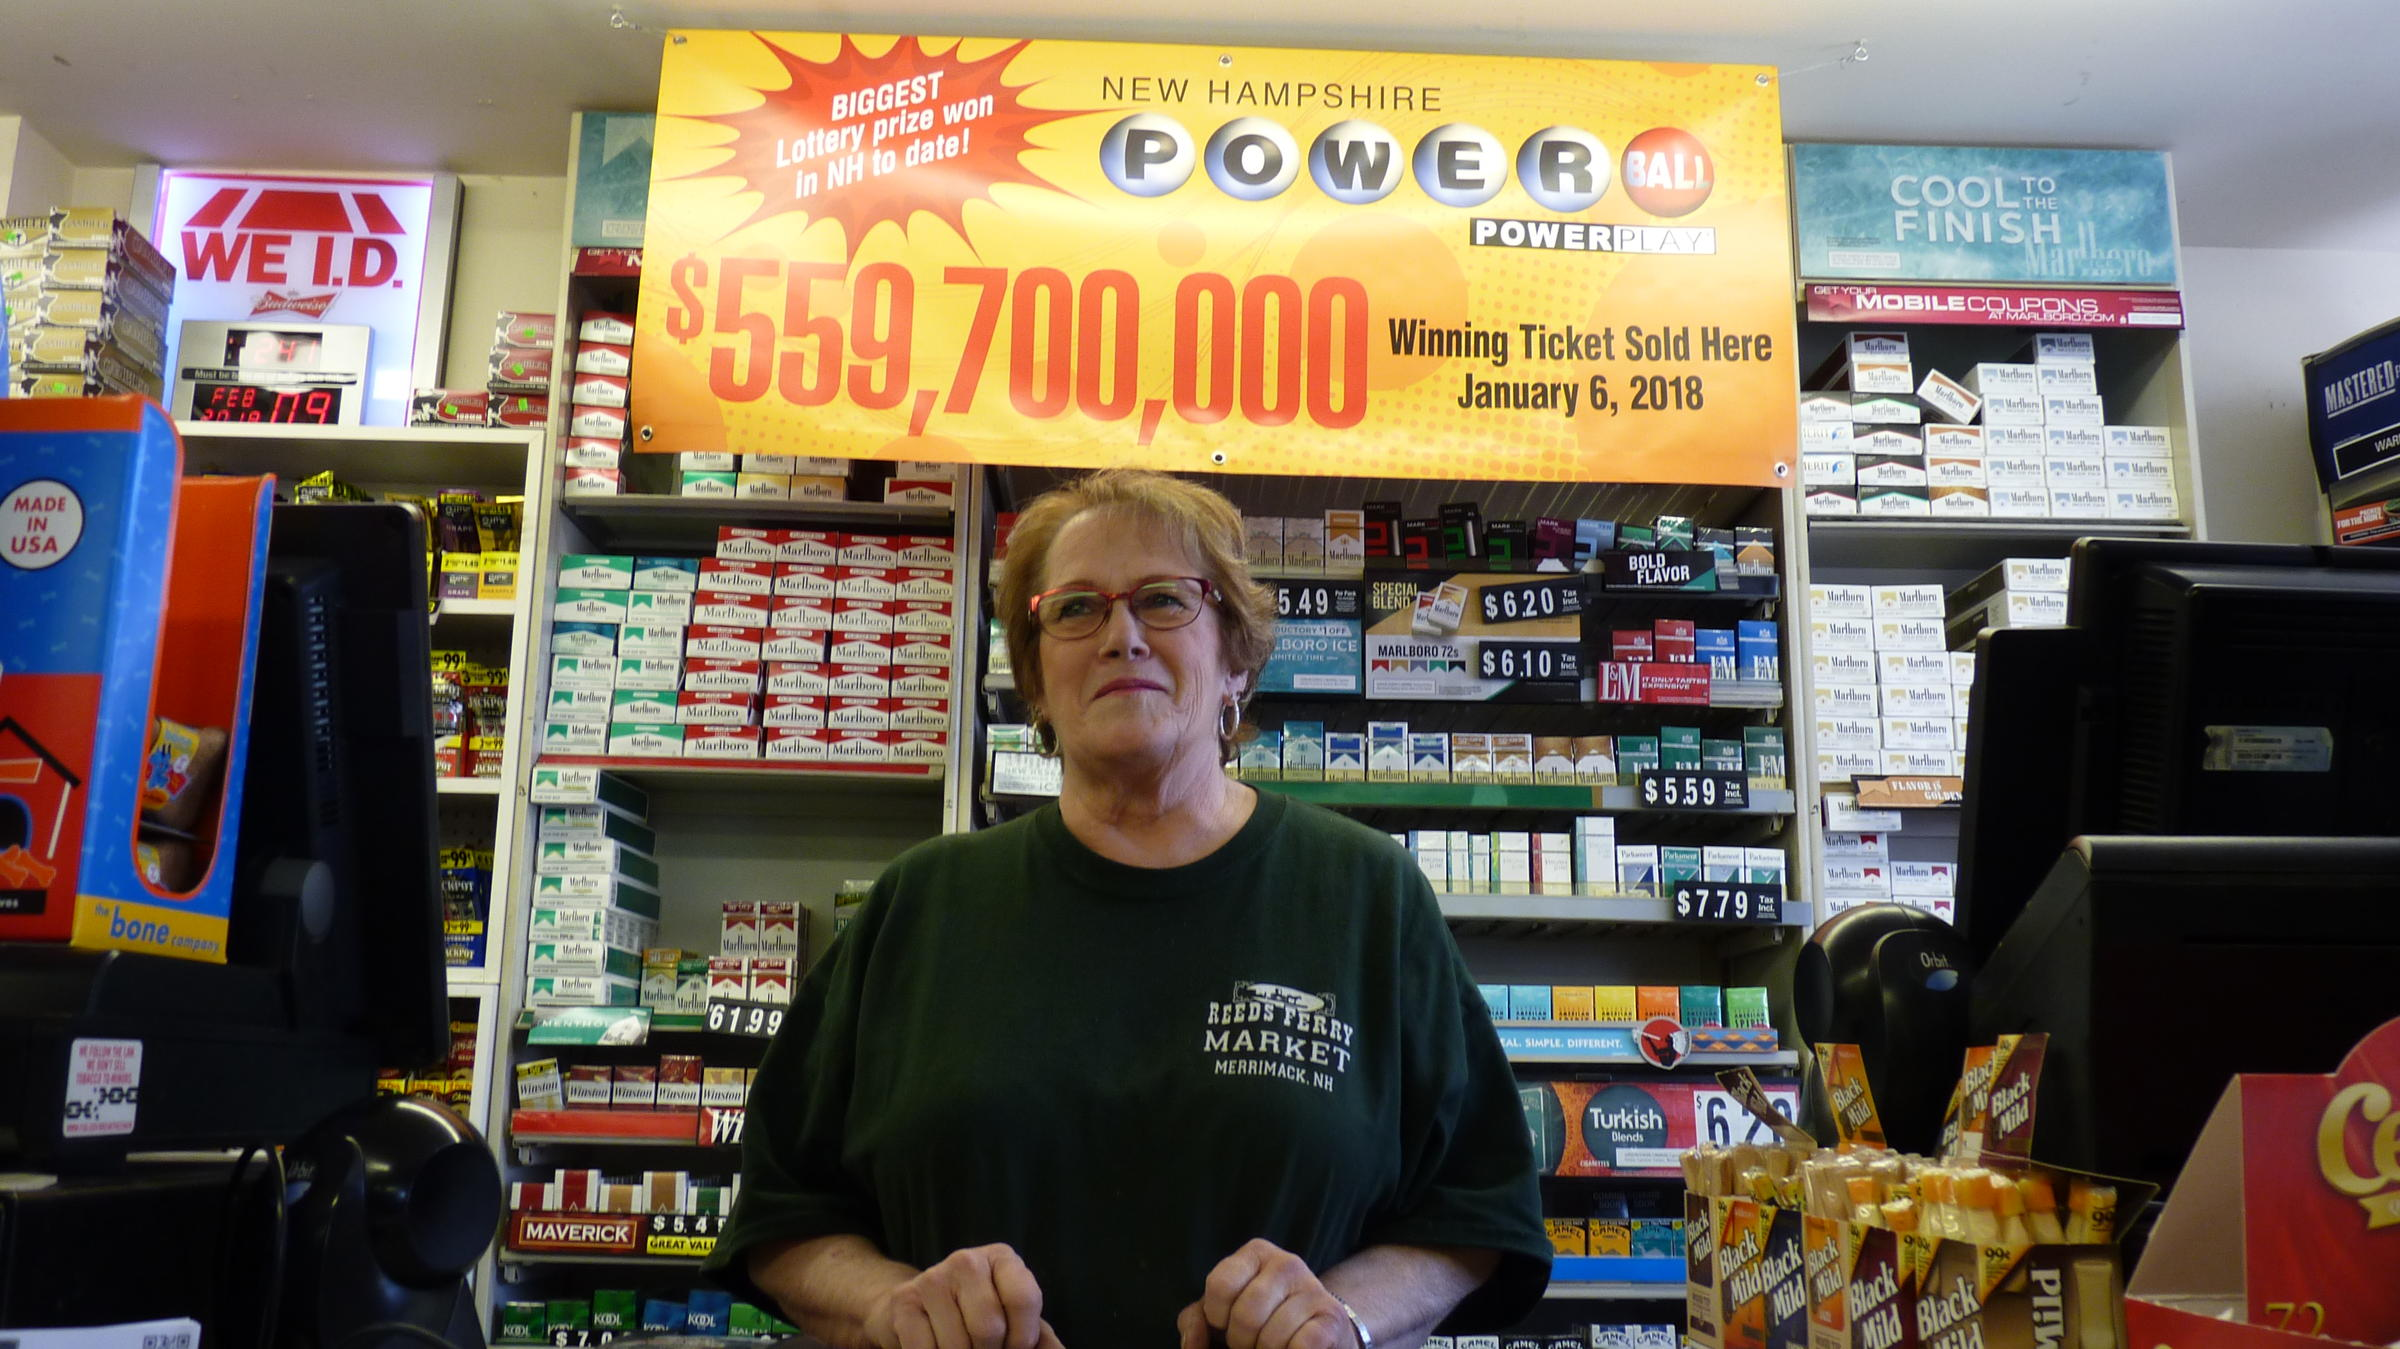 NH Officials to Powerball Winner: Sorry, Rules are Rules